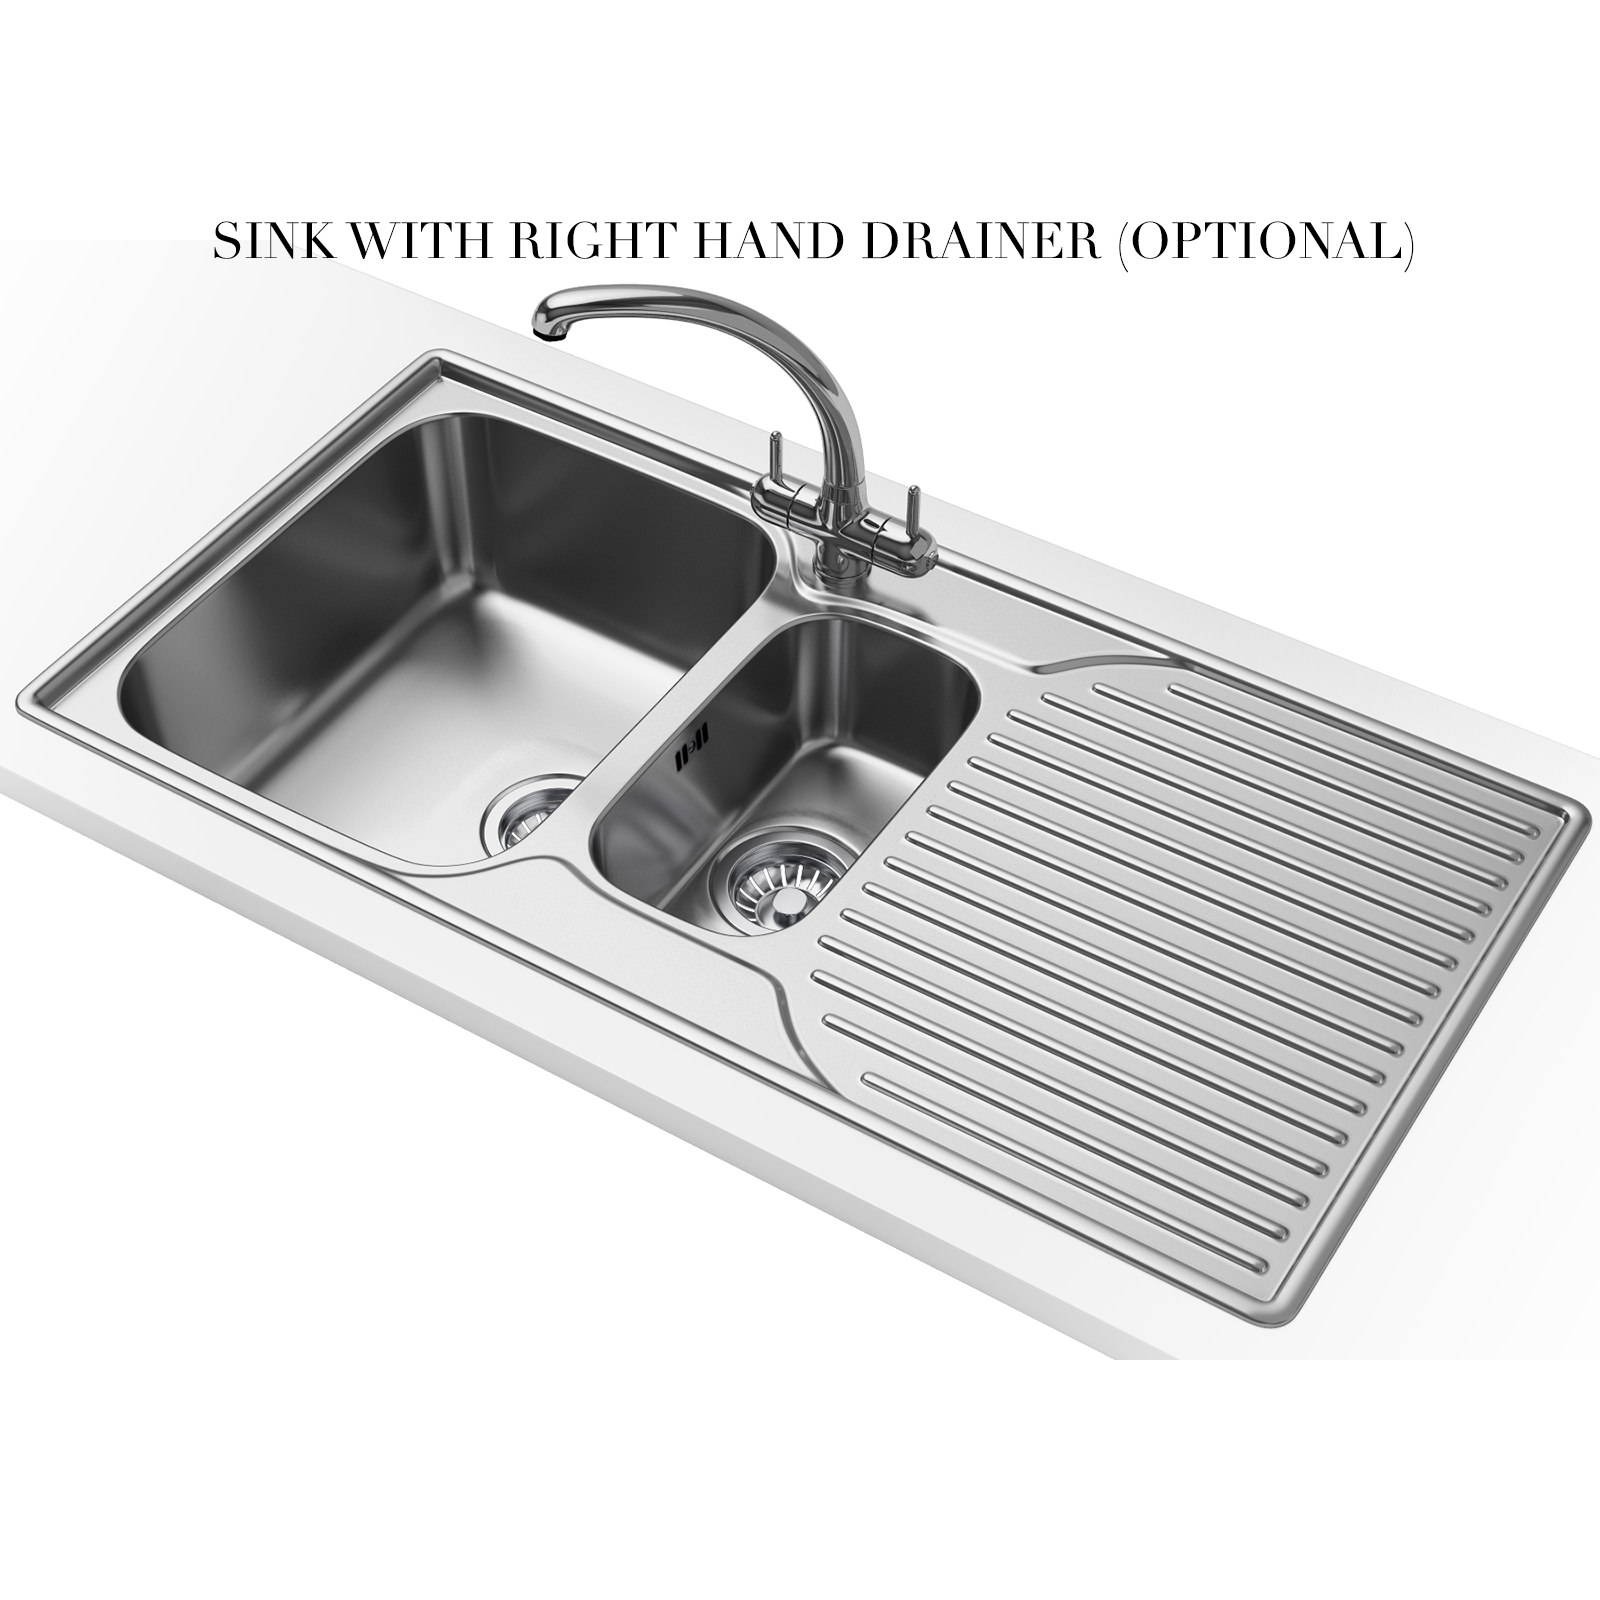 Sink Franke Stainless : Franke Ariane ARX 651P Stainless Steel 1.5 Bowl Inset Sink 101.0277 ...